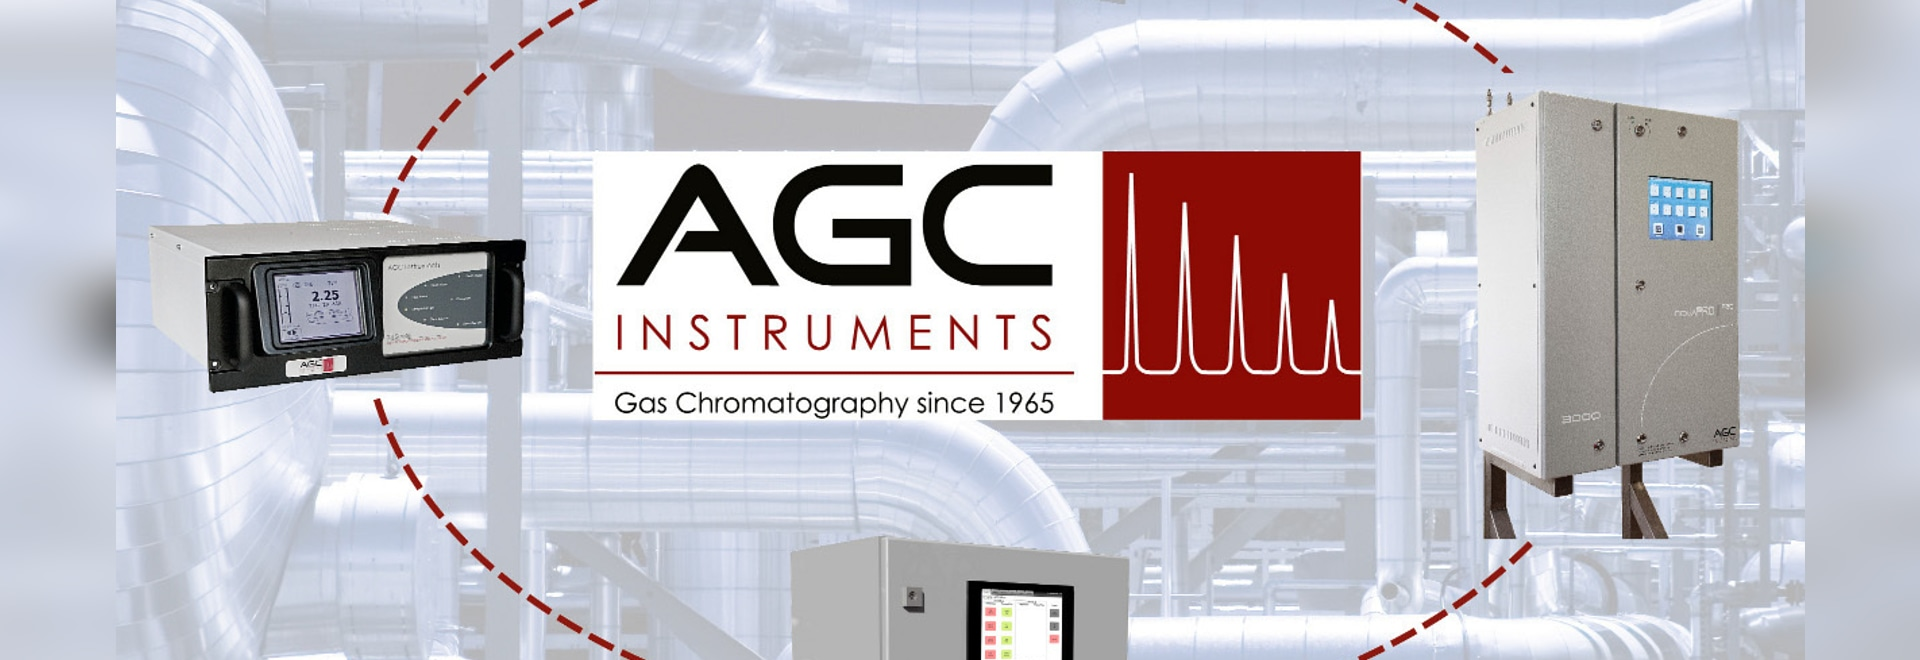 Innovative Gas Analysis Solutions Manufacturer seeks Distributors due to recent expansion